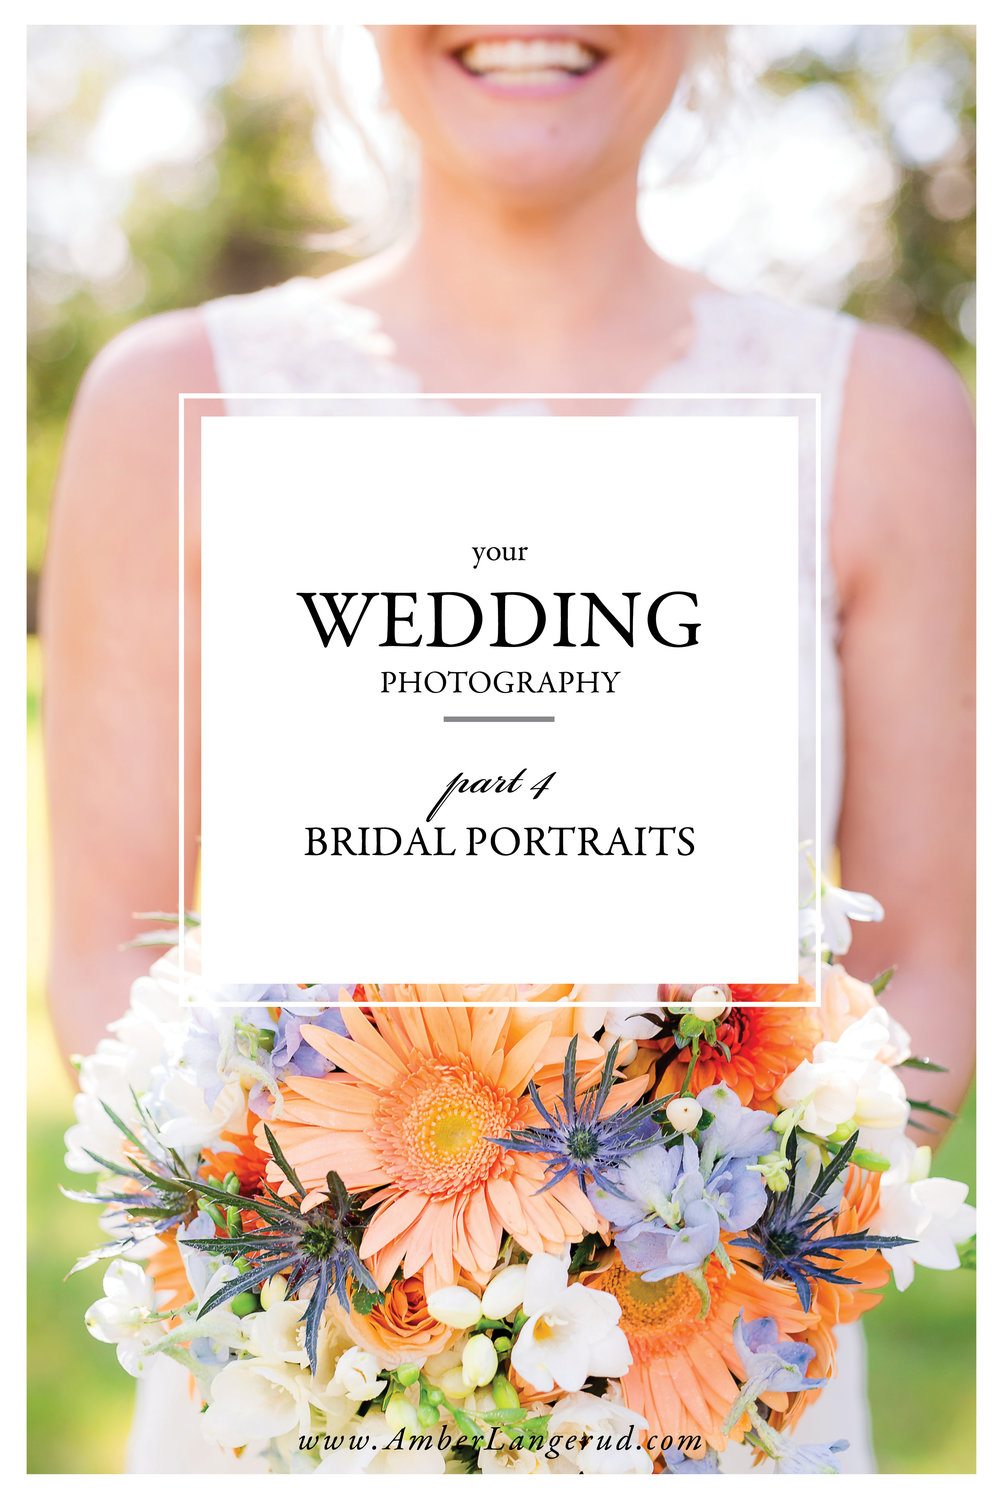 Your wedding from a photographers perspective part 4: bridal portraits